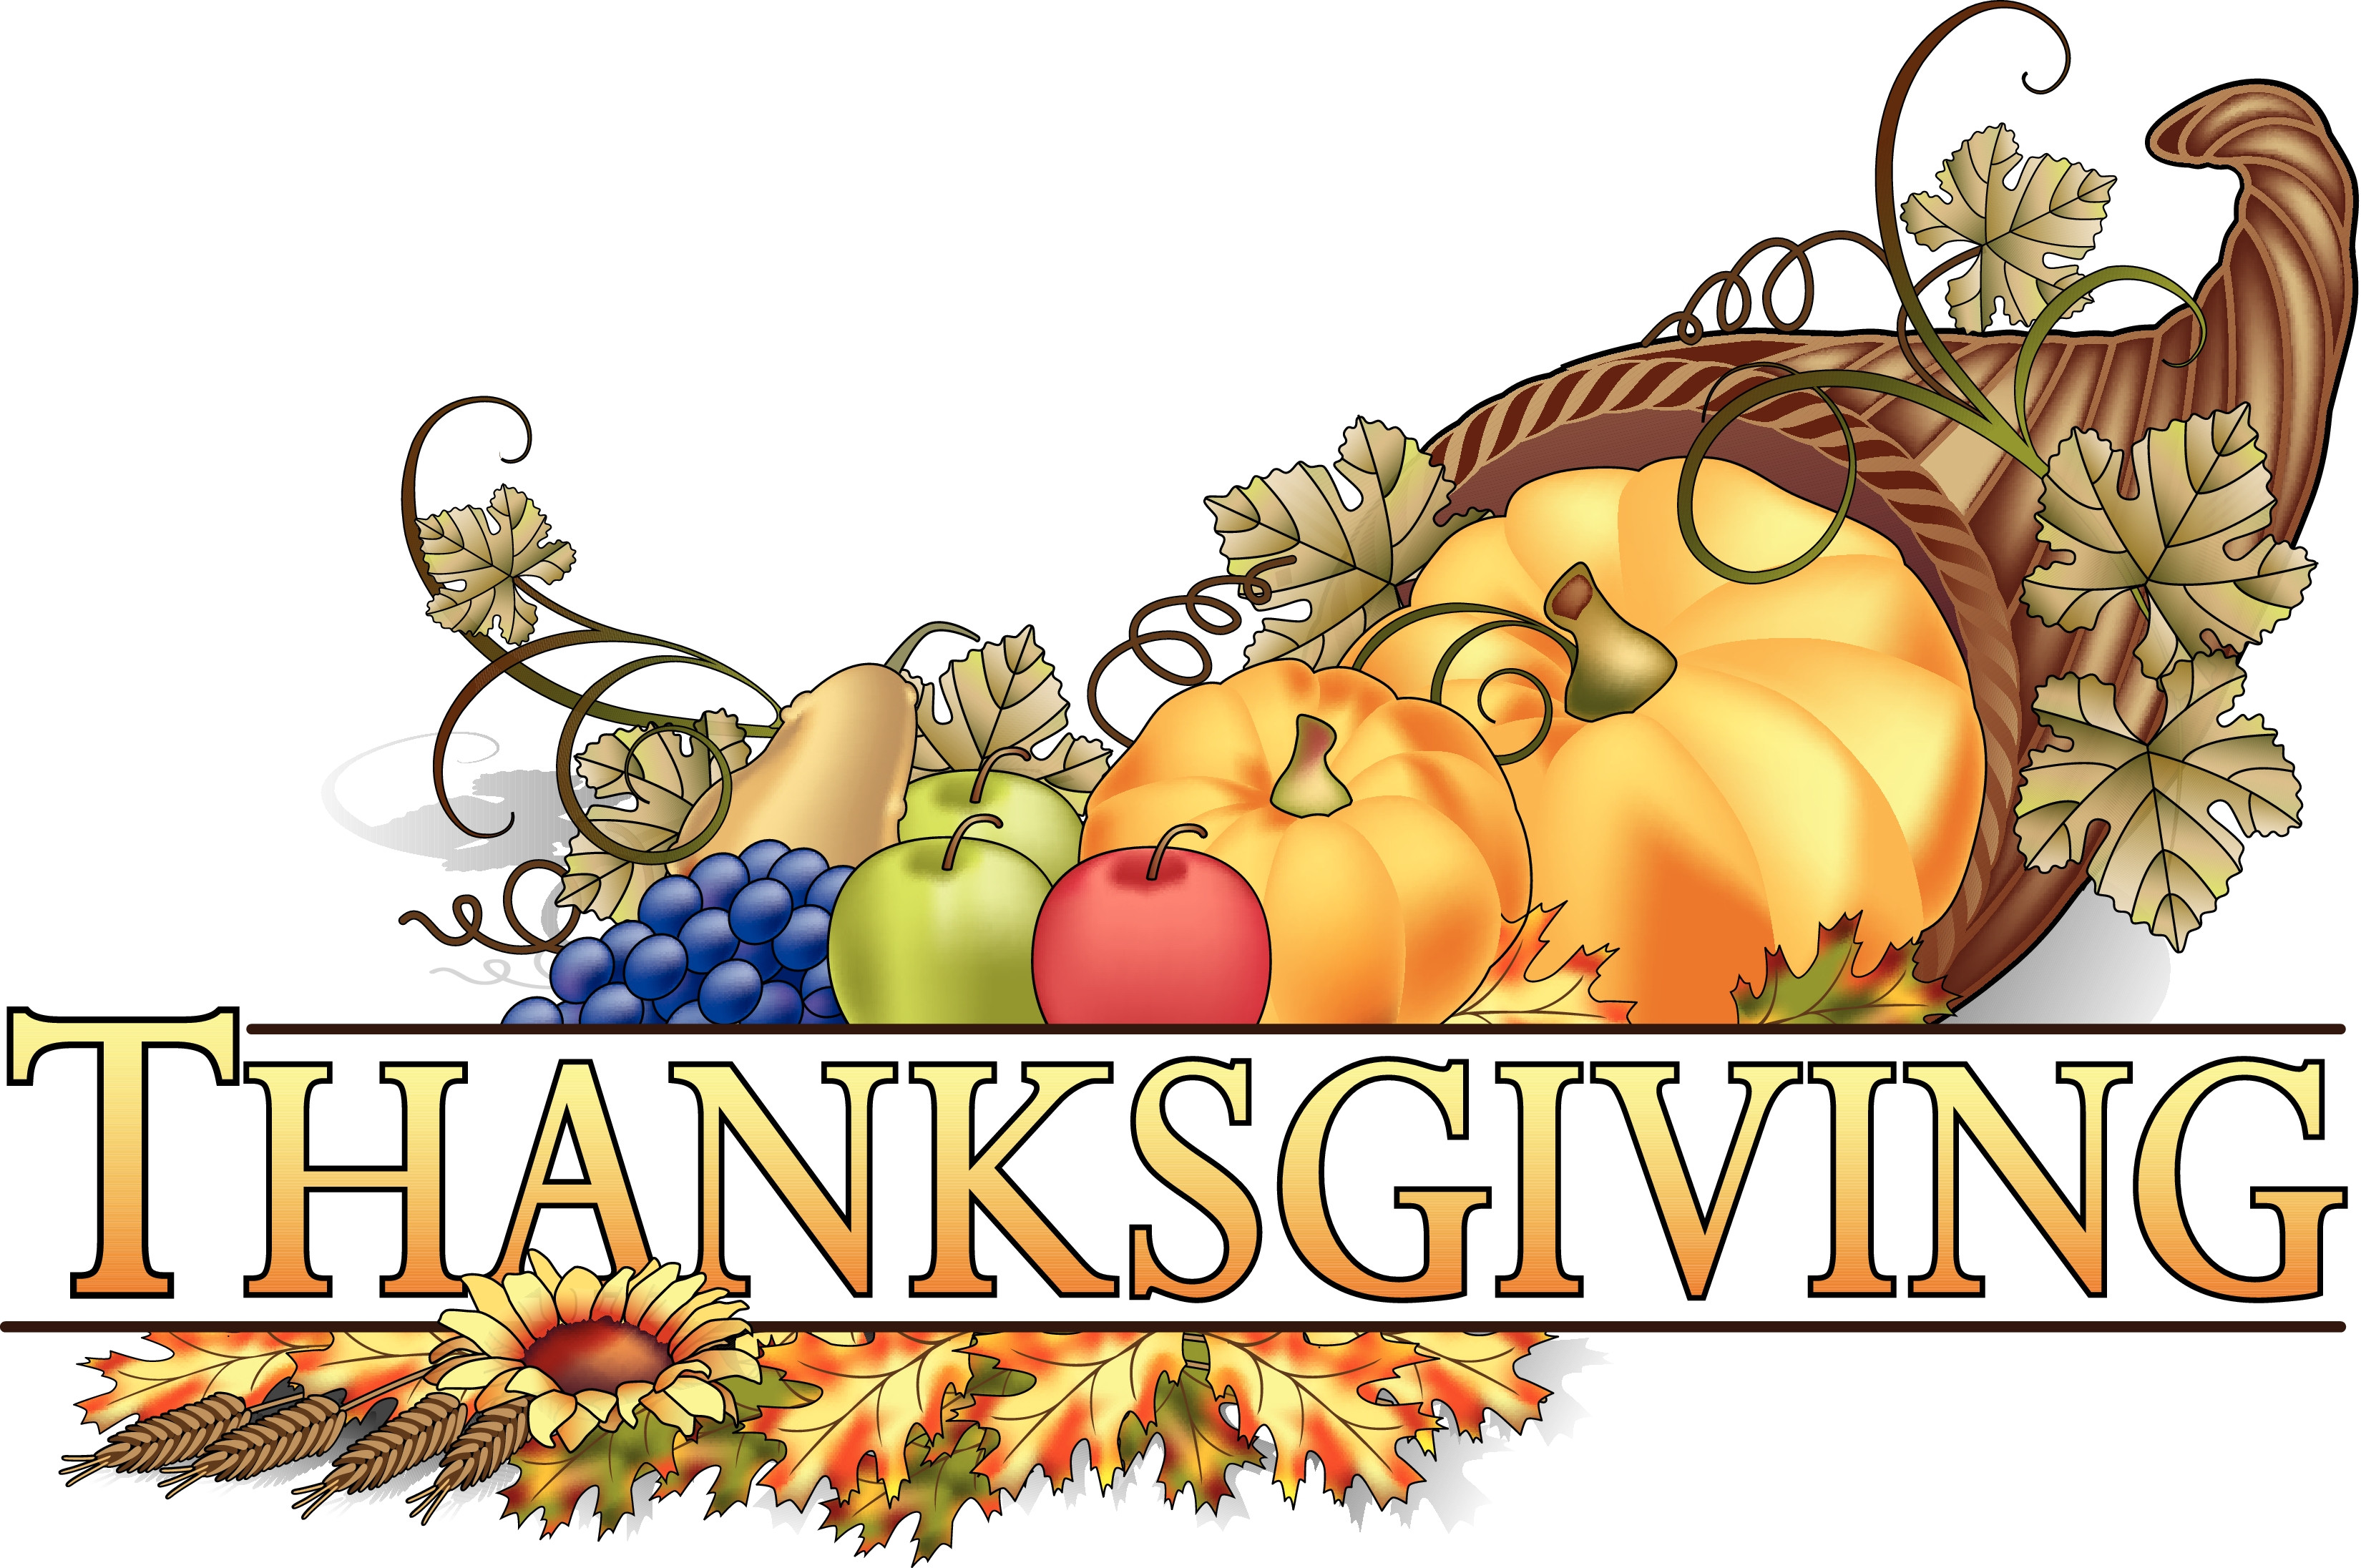 301 Moved Permanently: Best 30 Thanksgiving Dinner Clipart